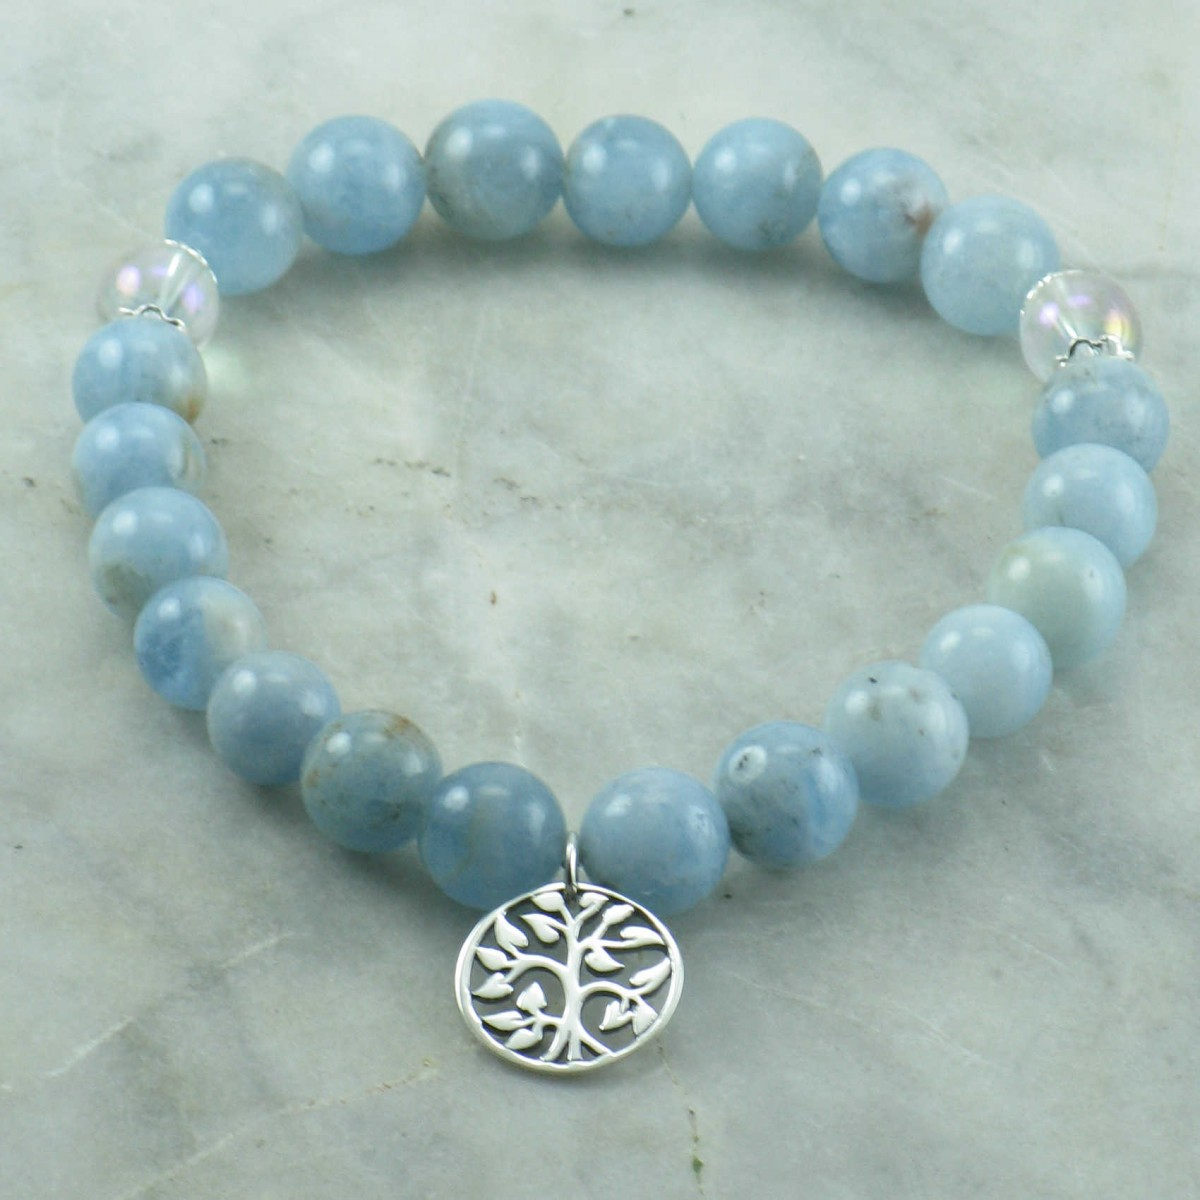 Winter_Mala_Bracelet_21_Aquamarine_Mala_Beads_Pitta_1700